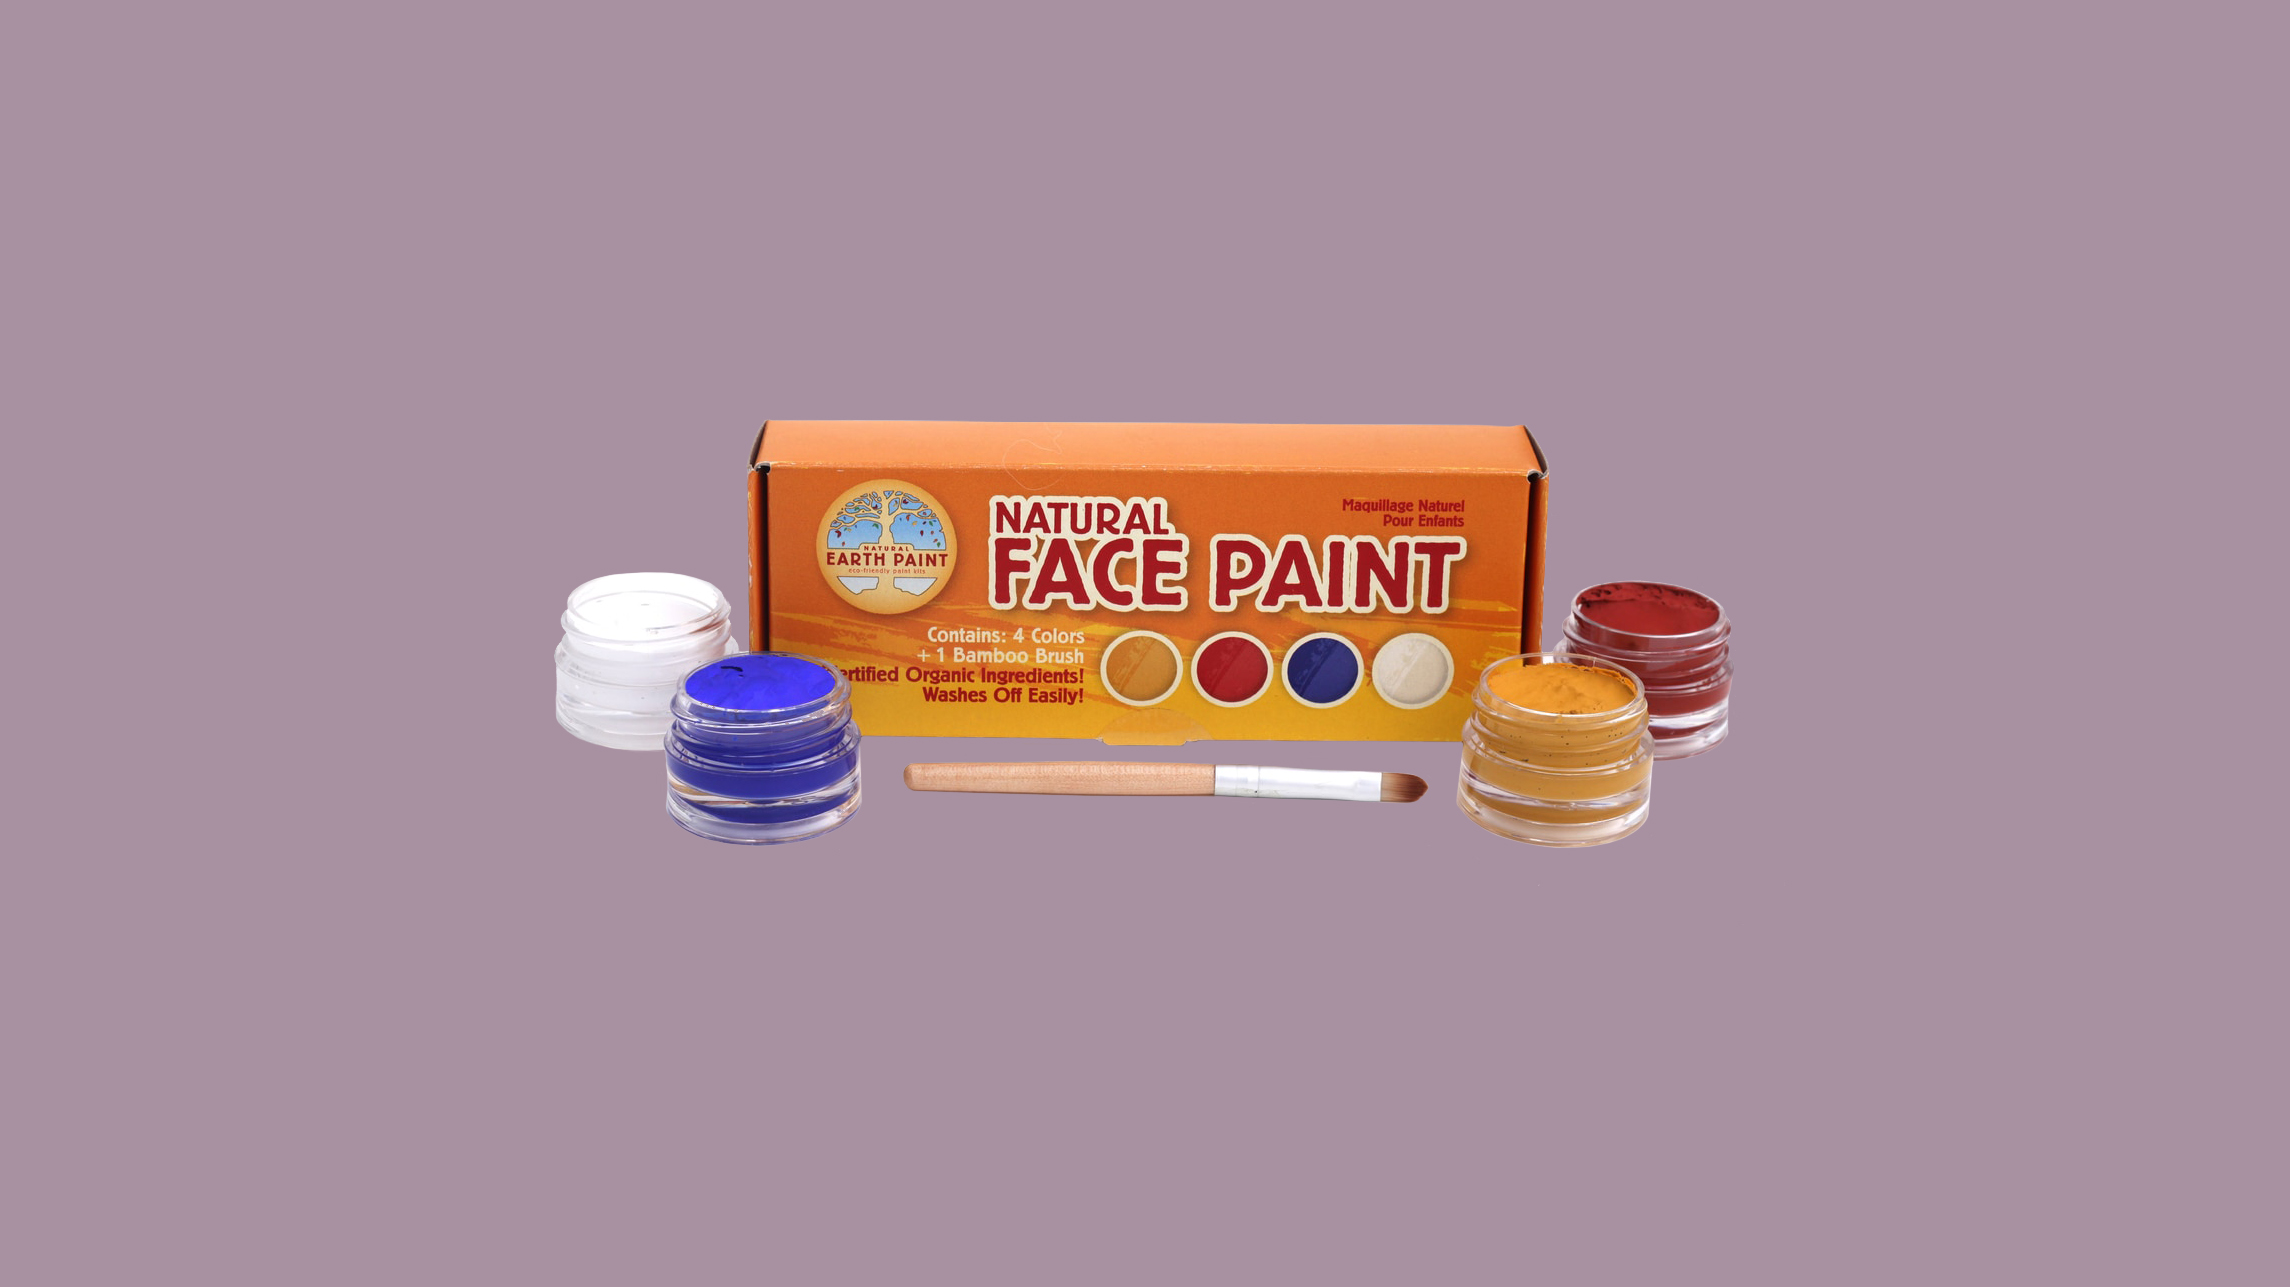 Natural Earth Face Paint